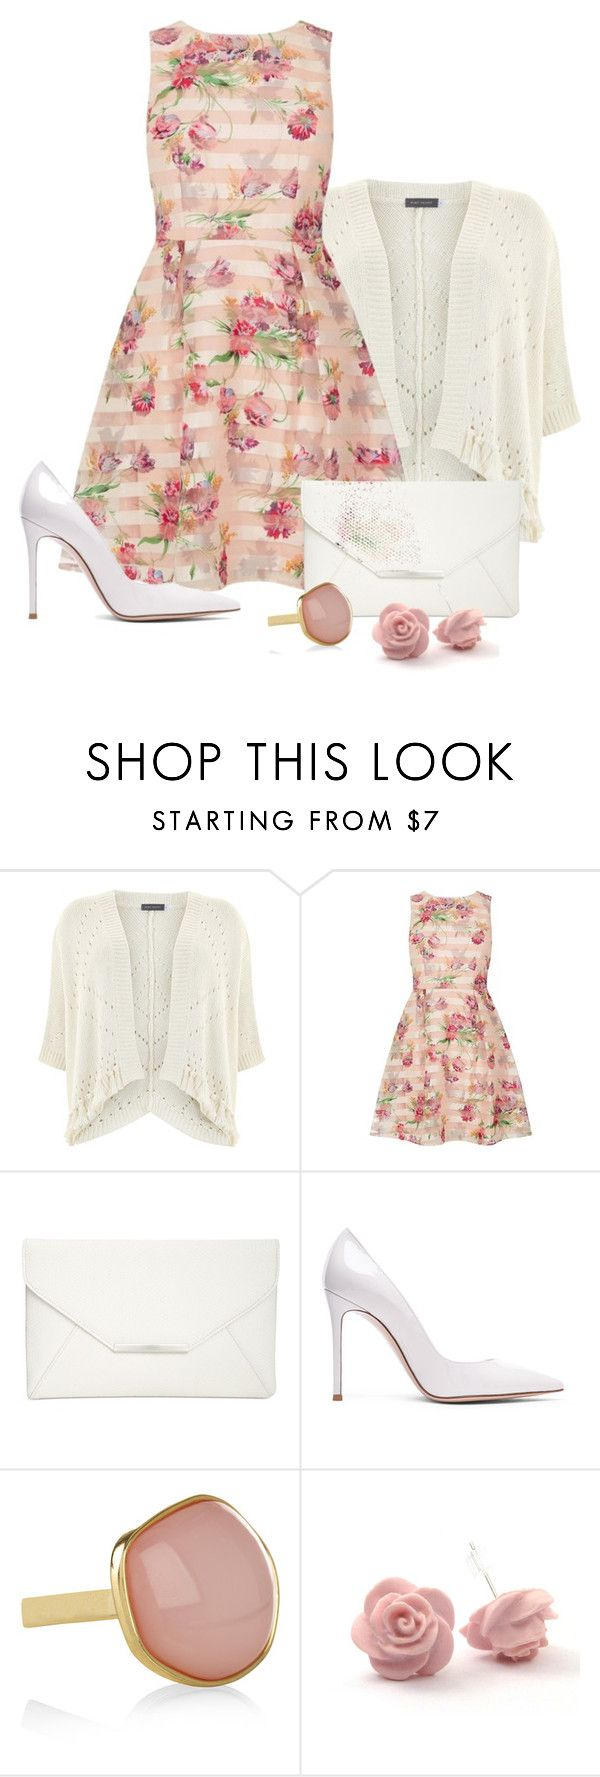 """""""Sin título #1938"""" by loveisforgirls ❤ liked on Polyvore featuring Mint Velvet, Oasis, Style & Co., Gianvito Rossi and Monsoon"""